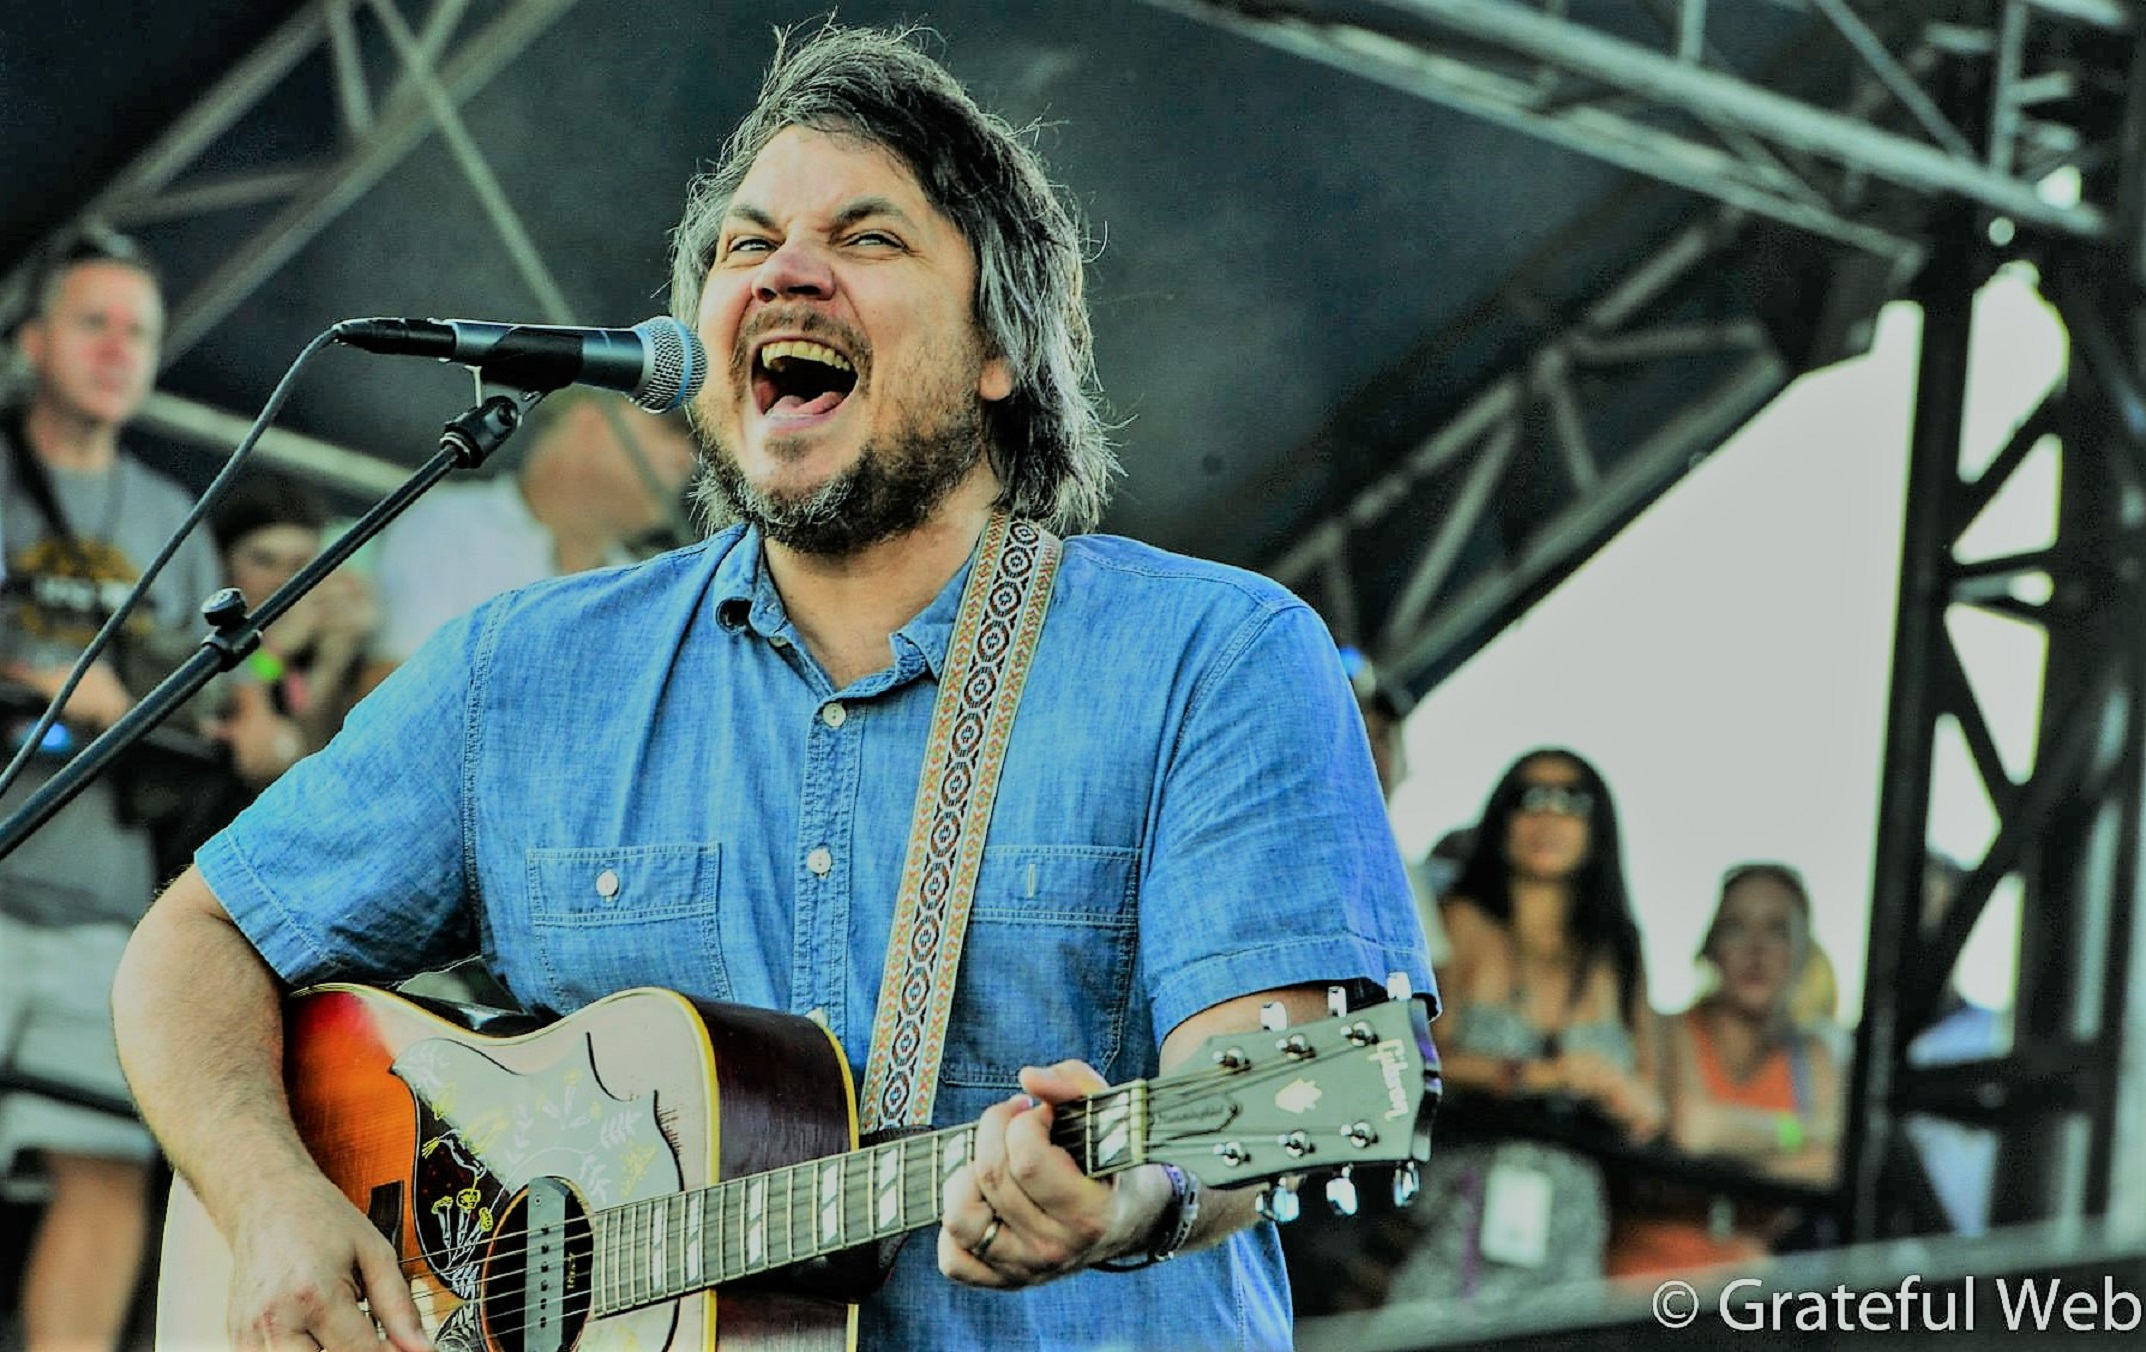 Jeff Tweedy Announces Solo Tour, On Sale Now